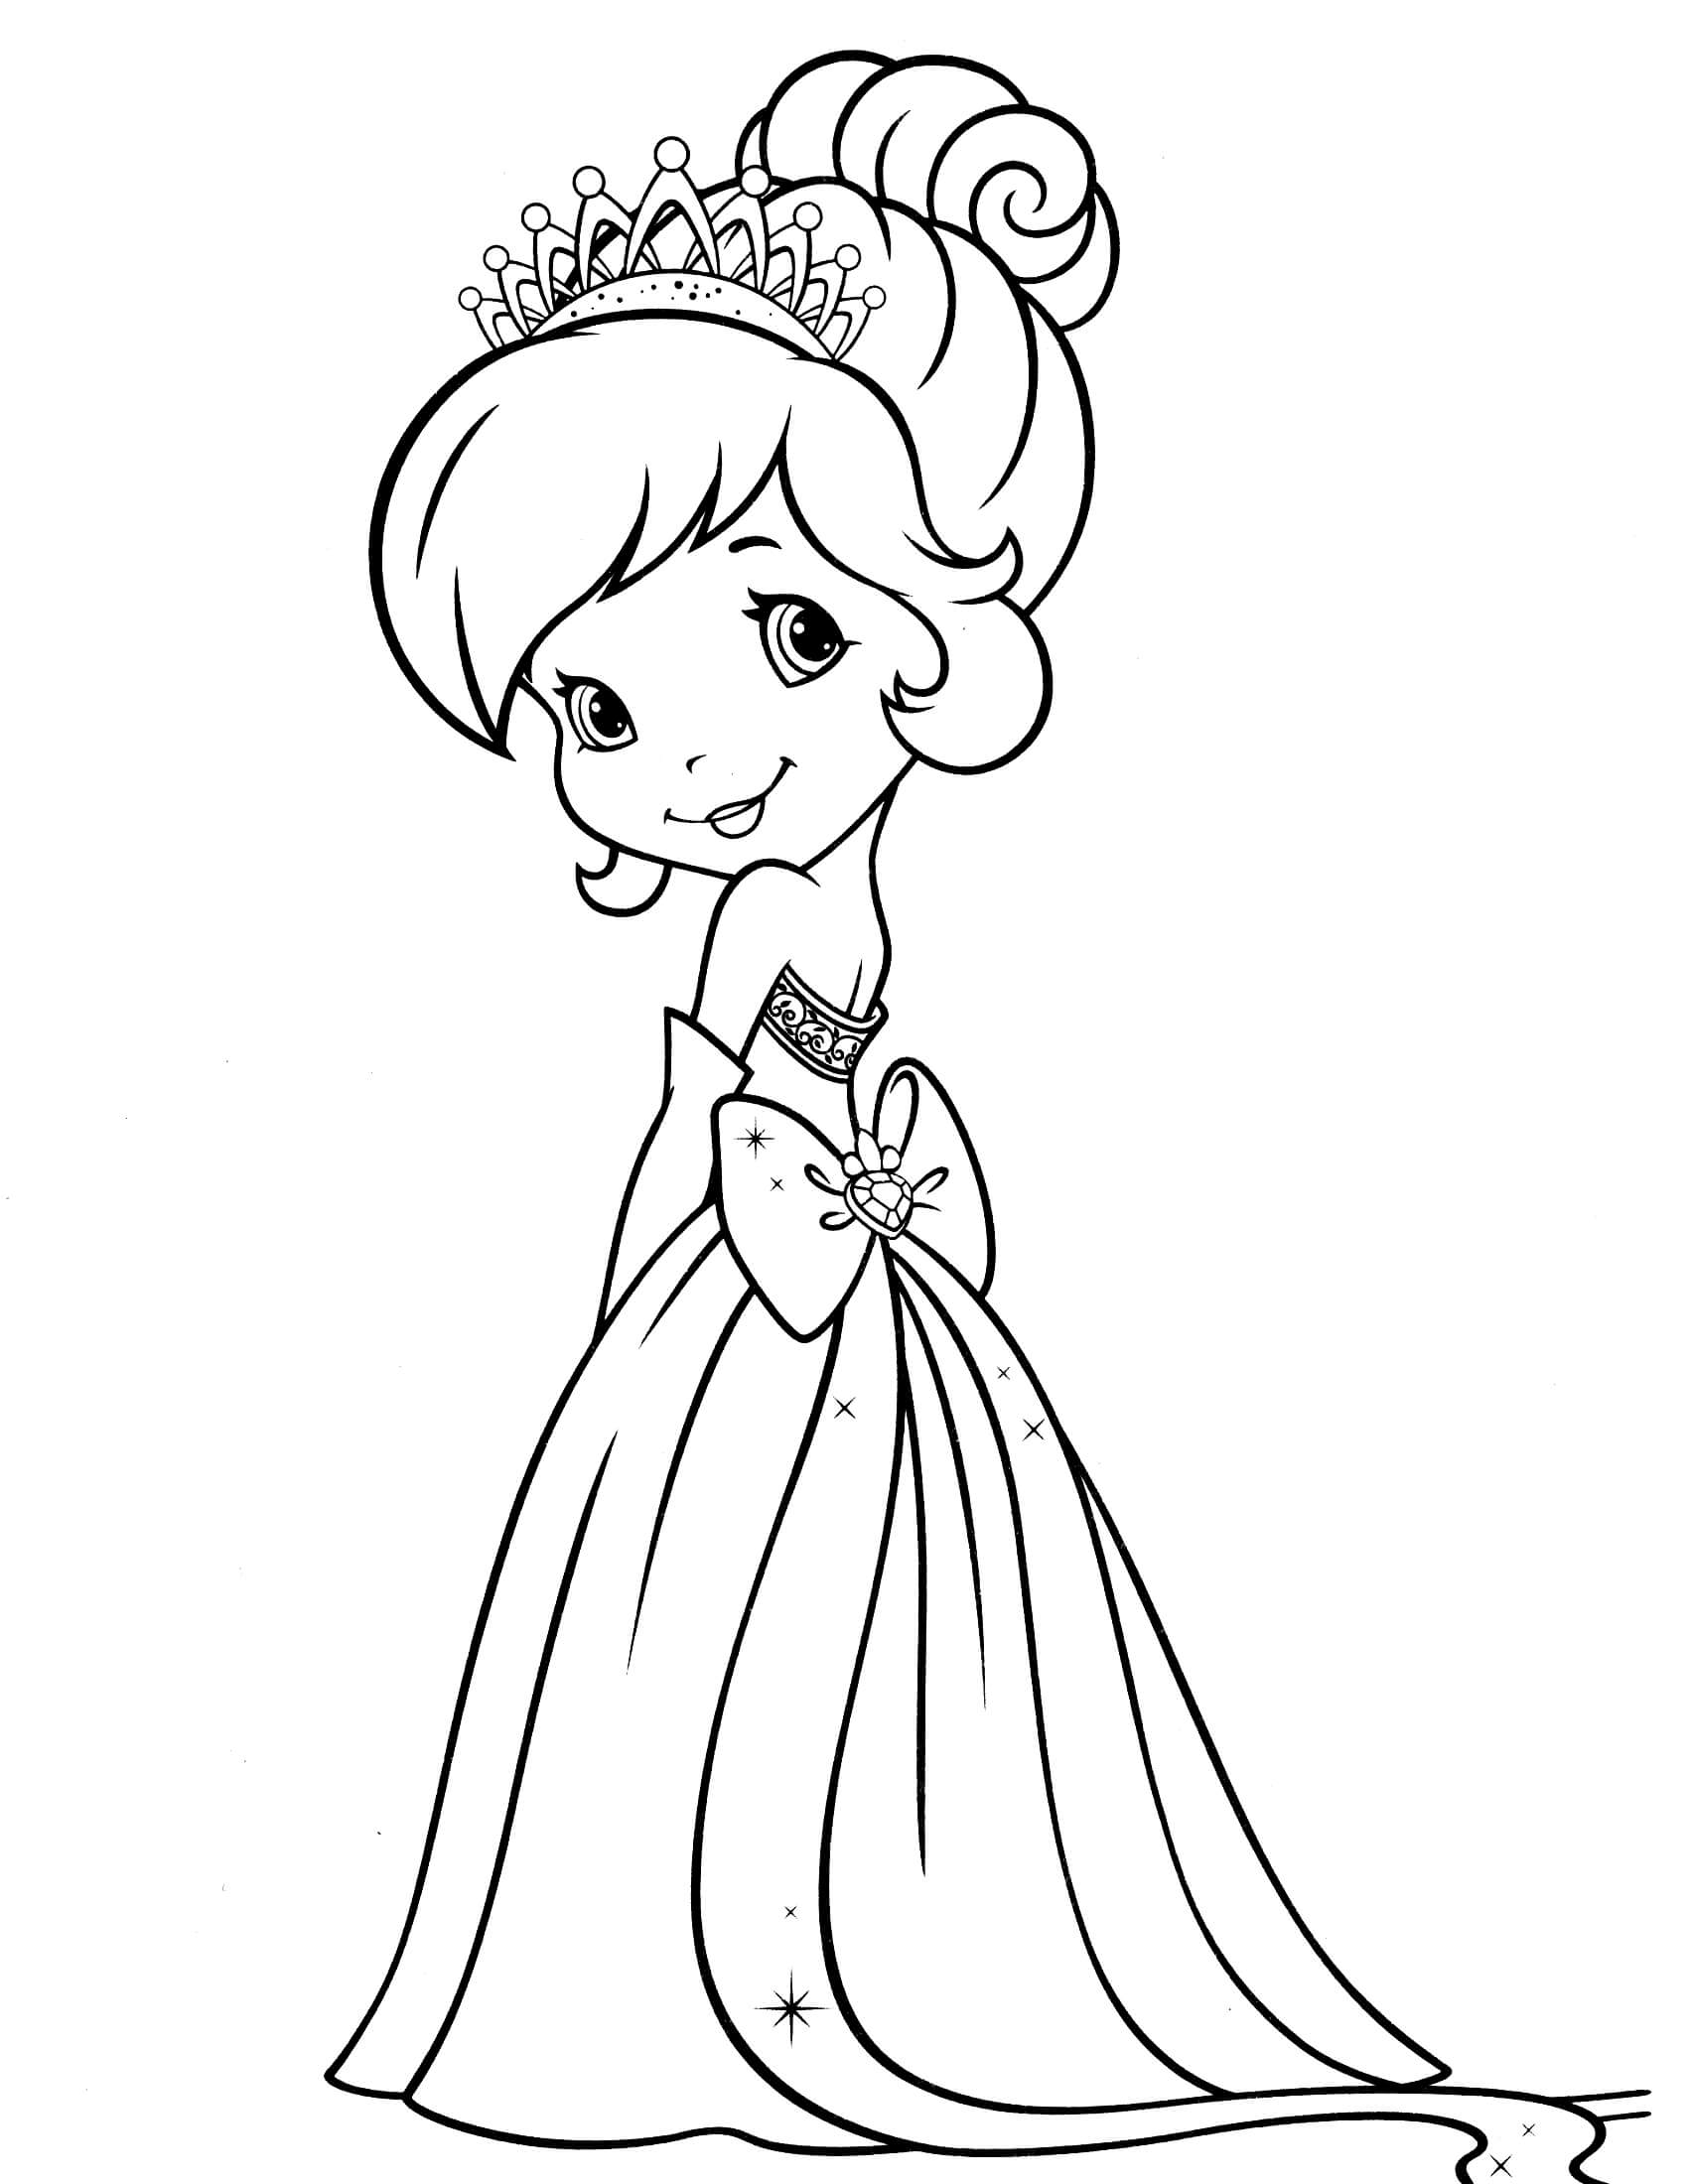 strawberry girl coloring pages strawberry shortcake coloring page beautiful strawberry coloring girl strawberry pages